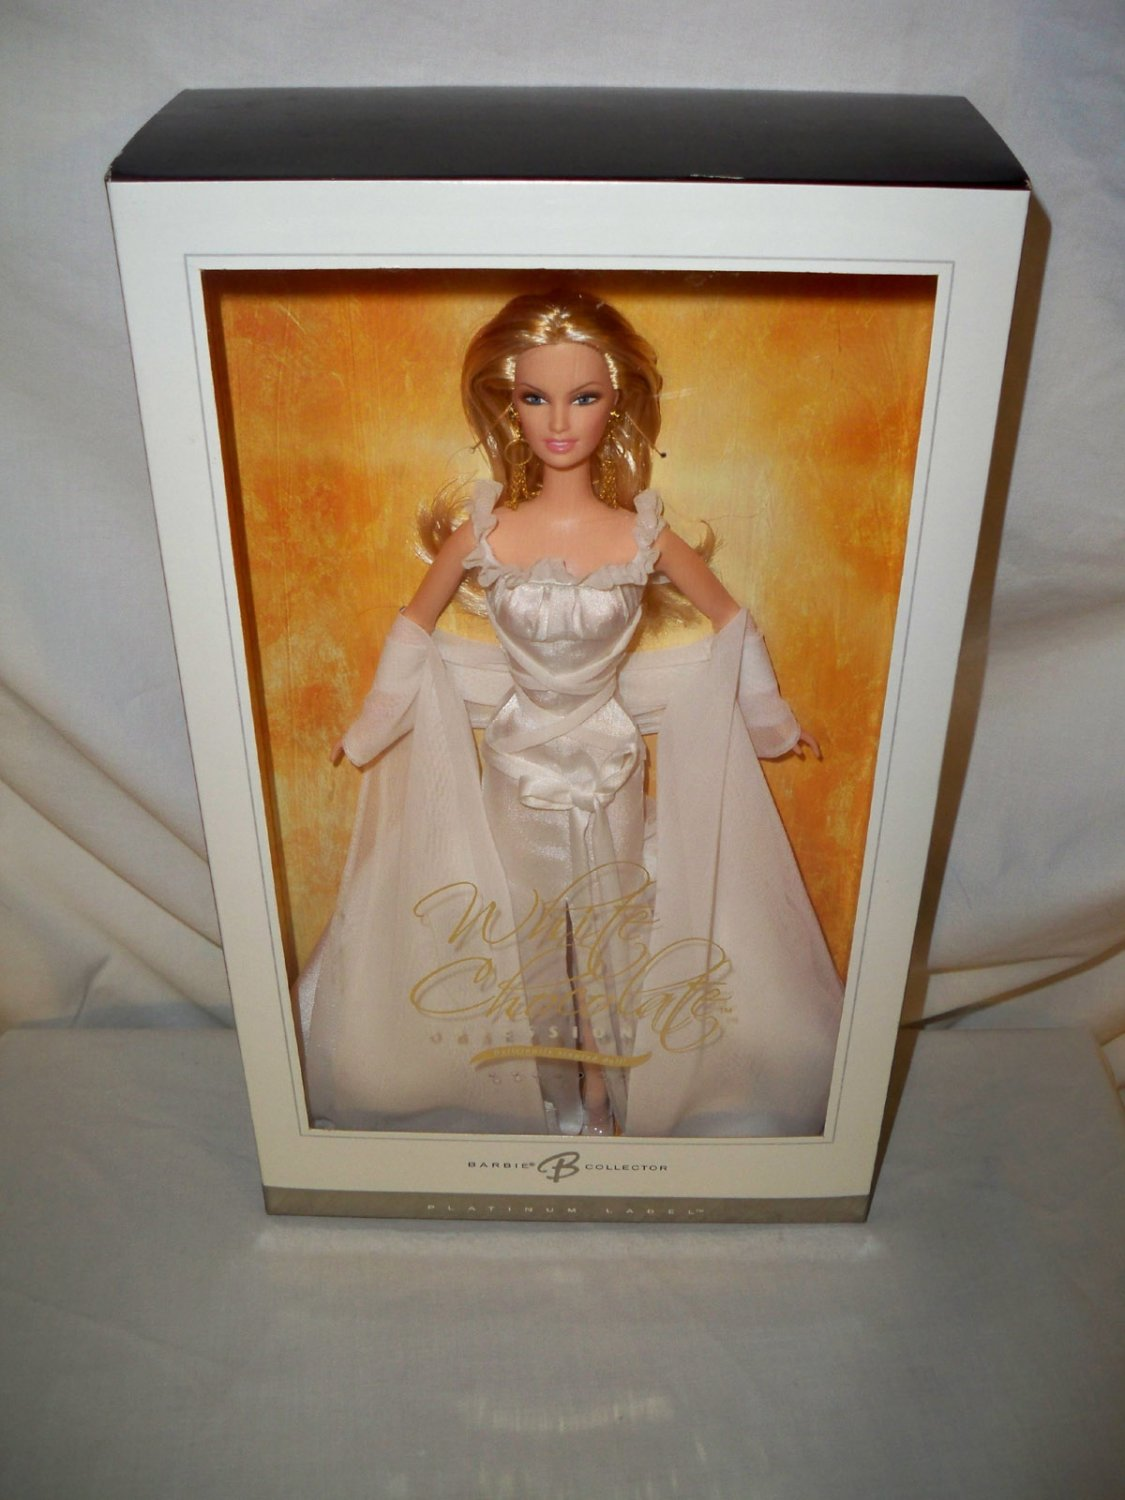 PLATINUM White Chocolate Obsession Barbie Doll  NRFB